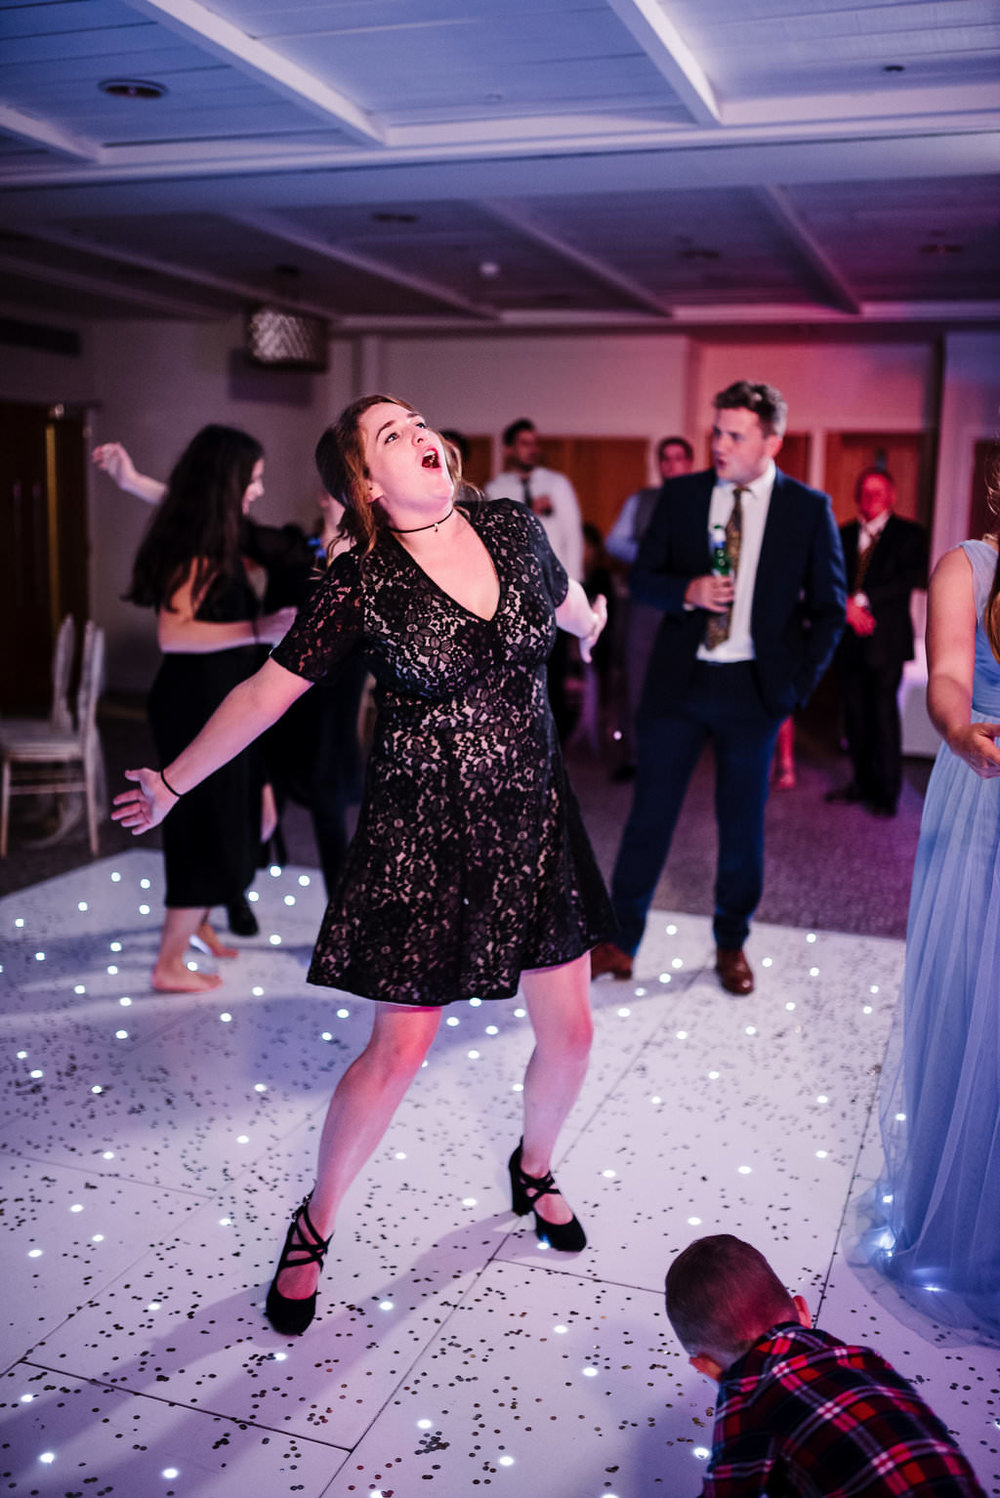 Fun photo of guest dancing. Stanley house wedding photography